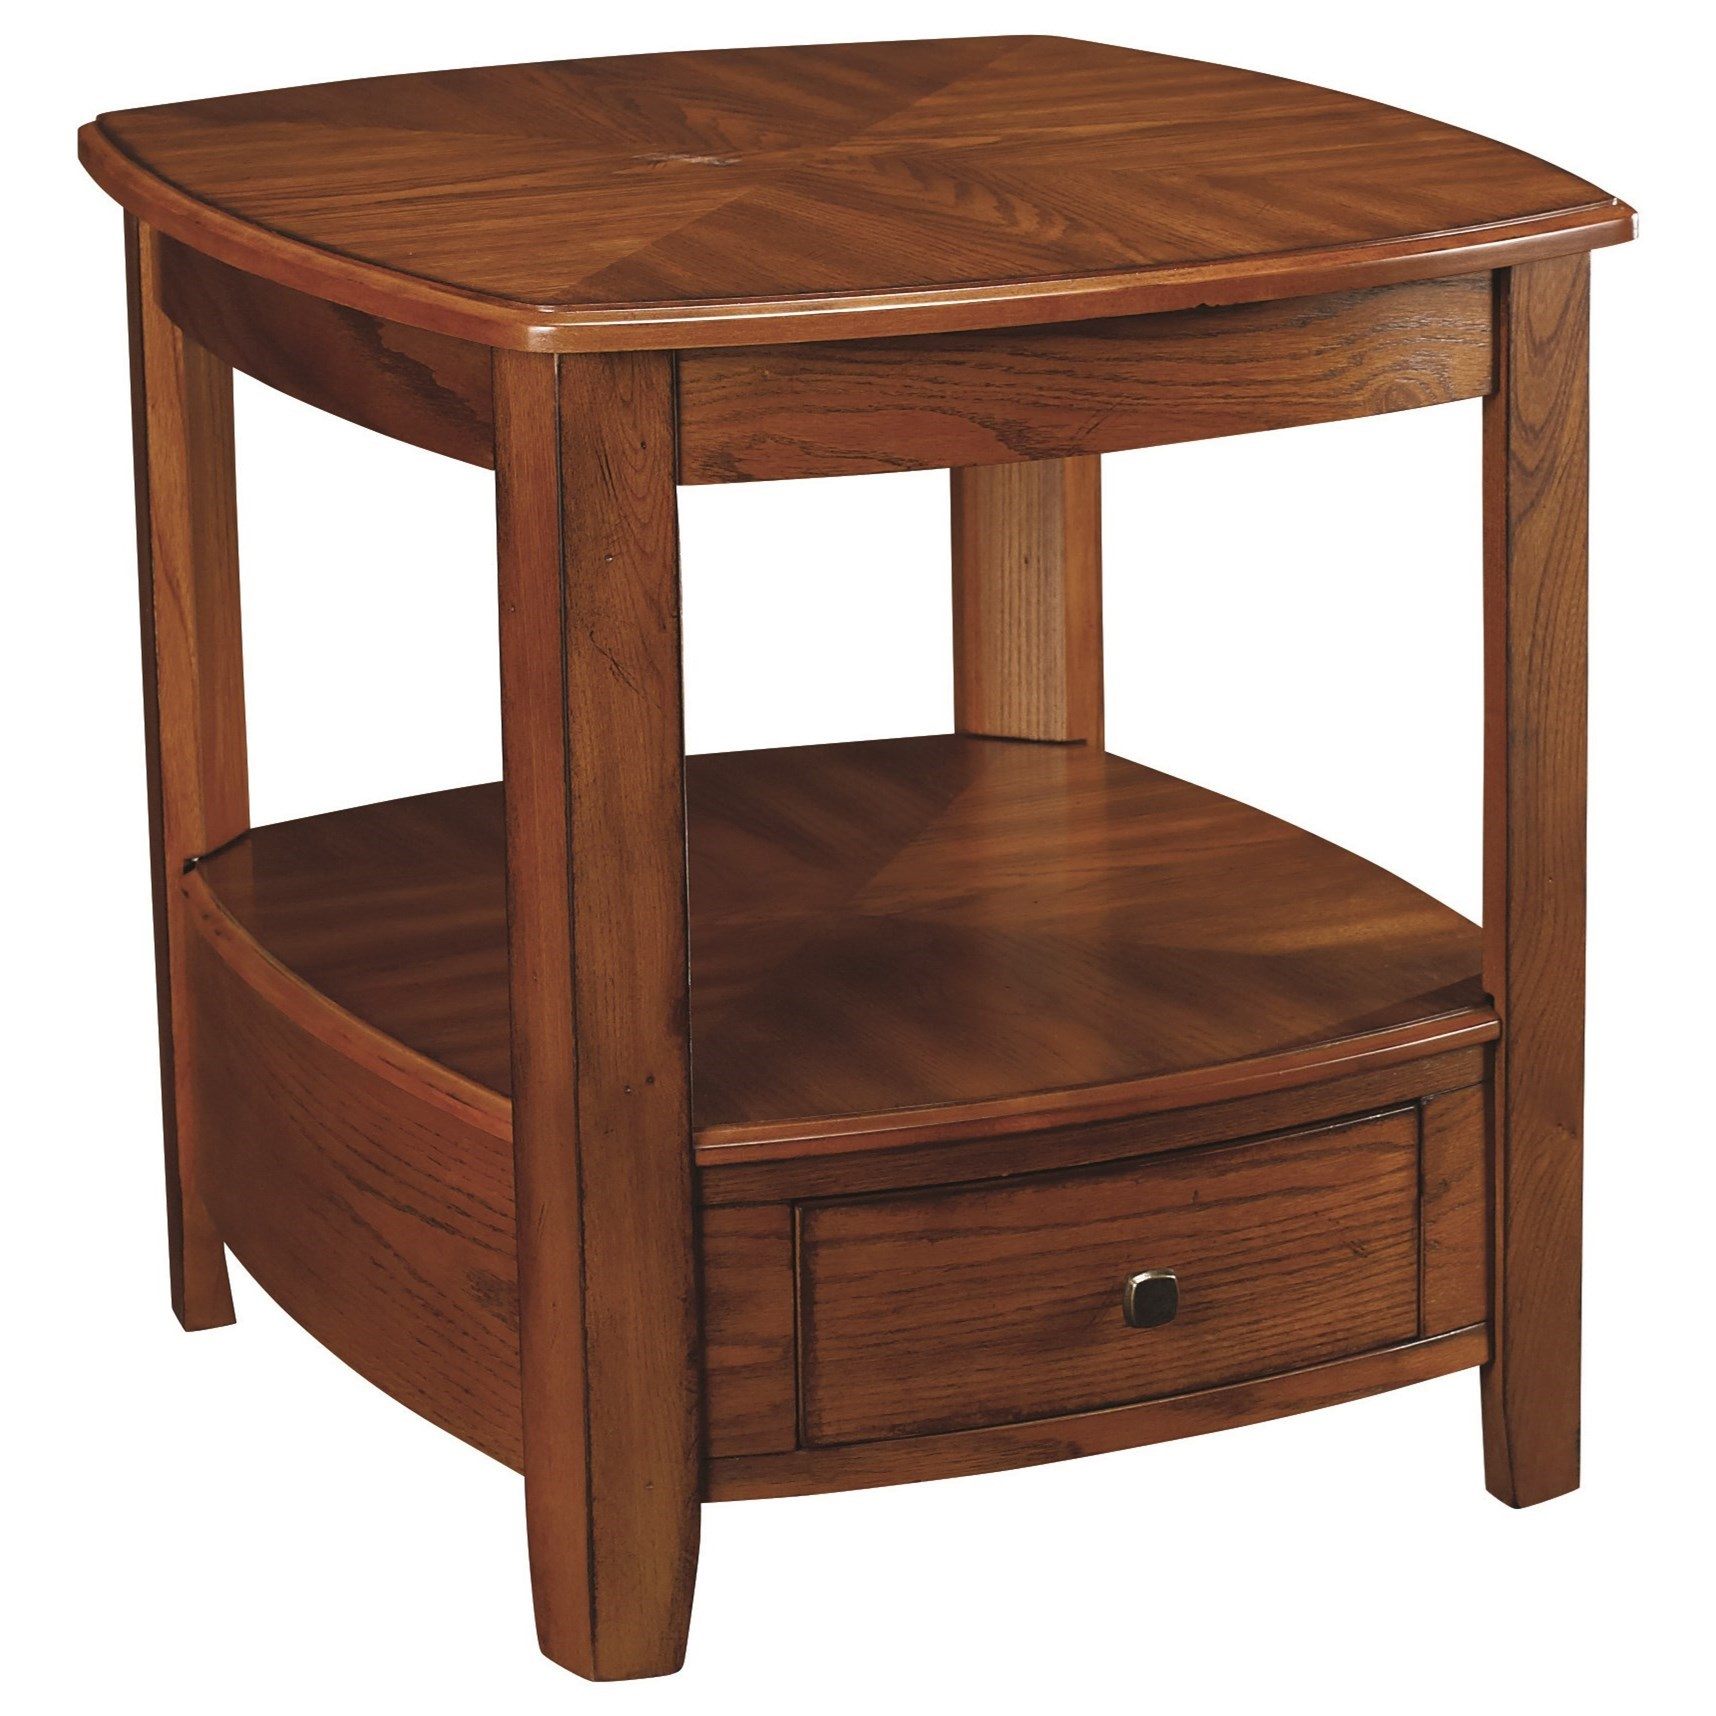 Primo Rectangular Drawer End Table by Hammary at Stoney Creek Furniture